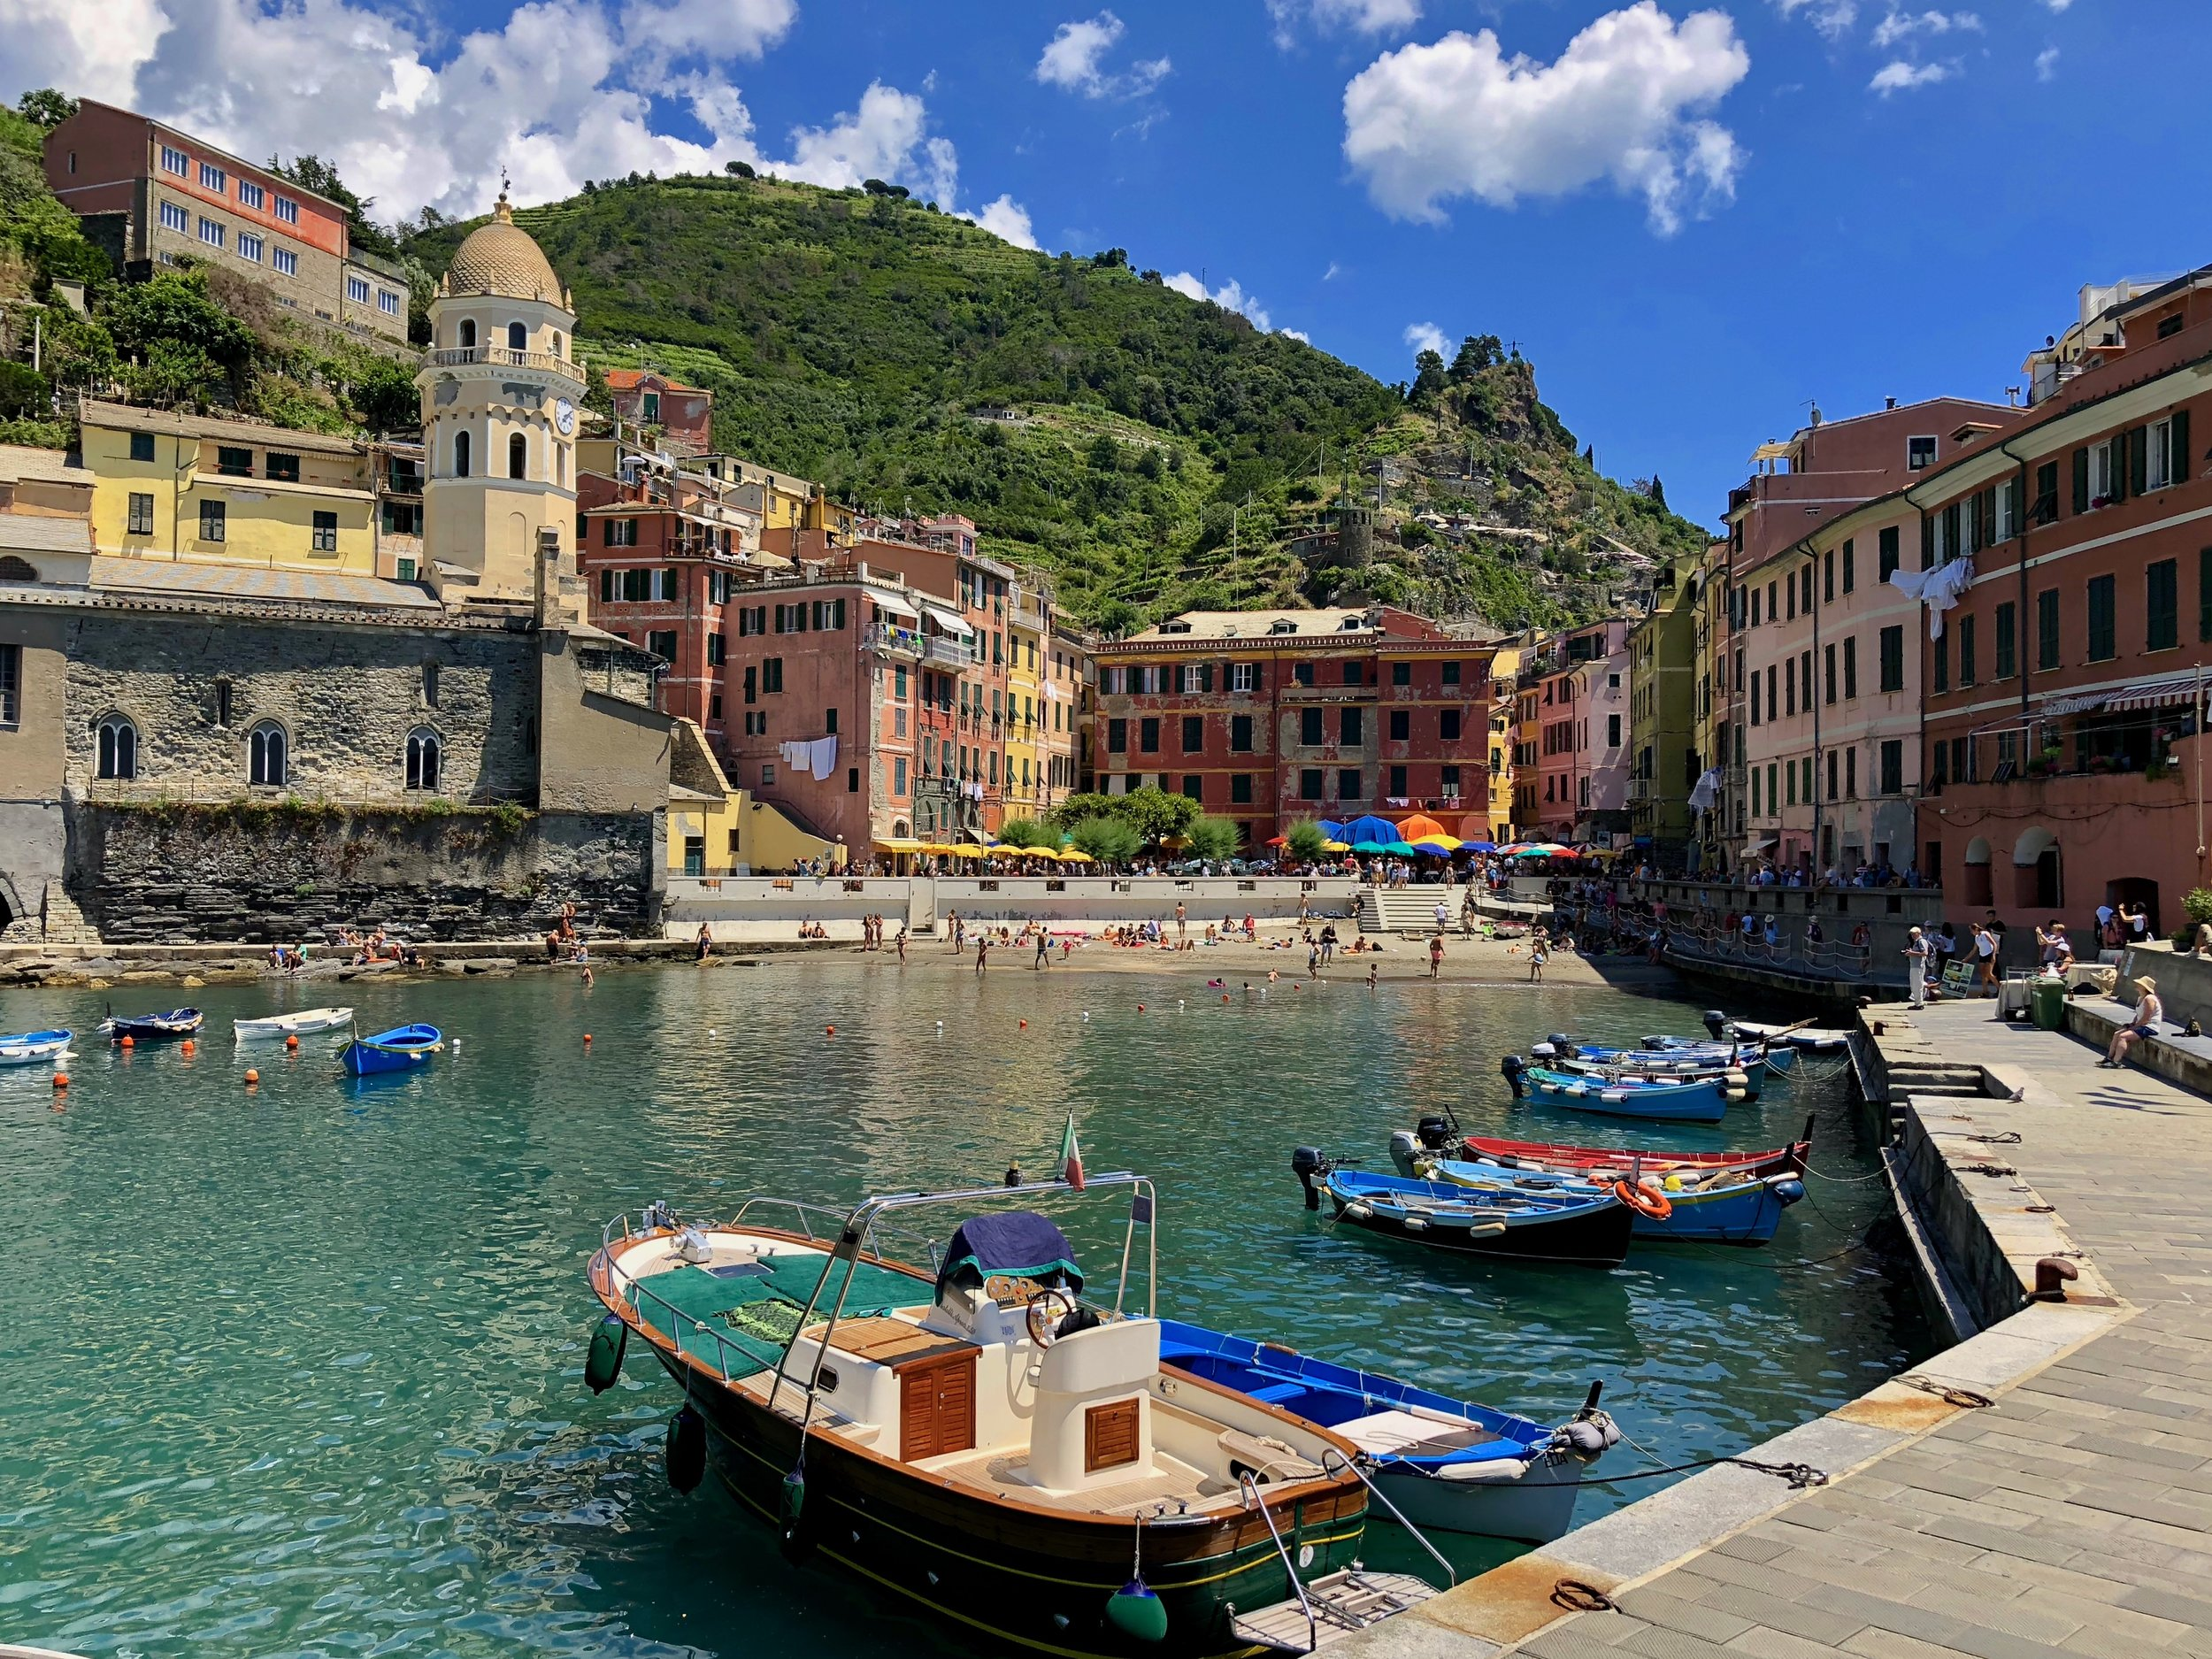 10/Relax by the sea in Cinque Terre